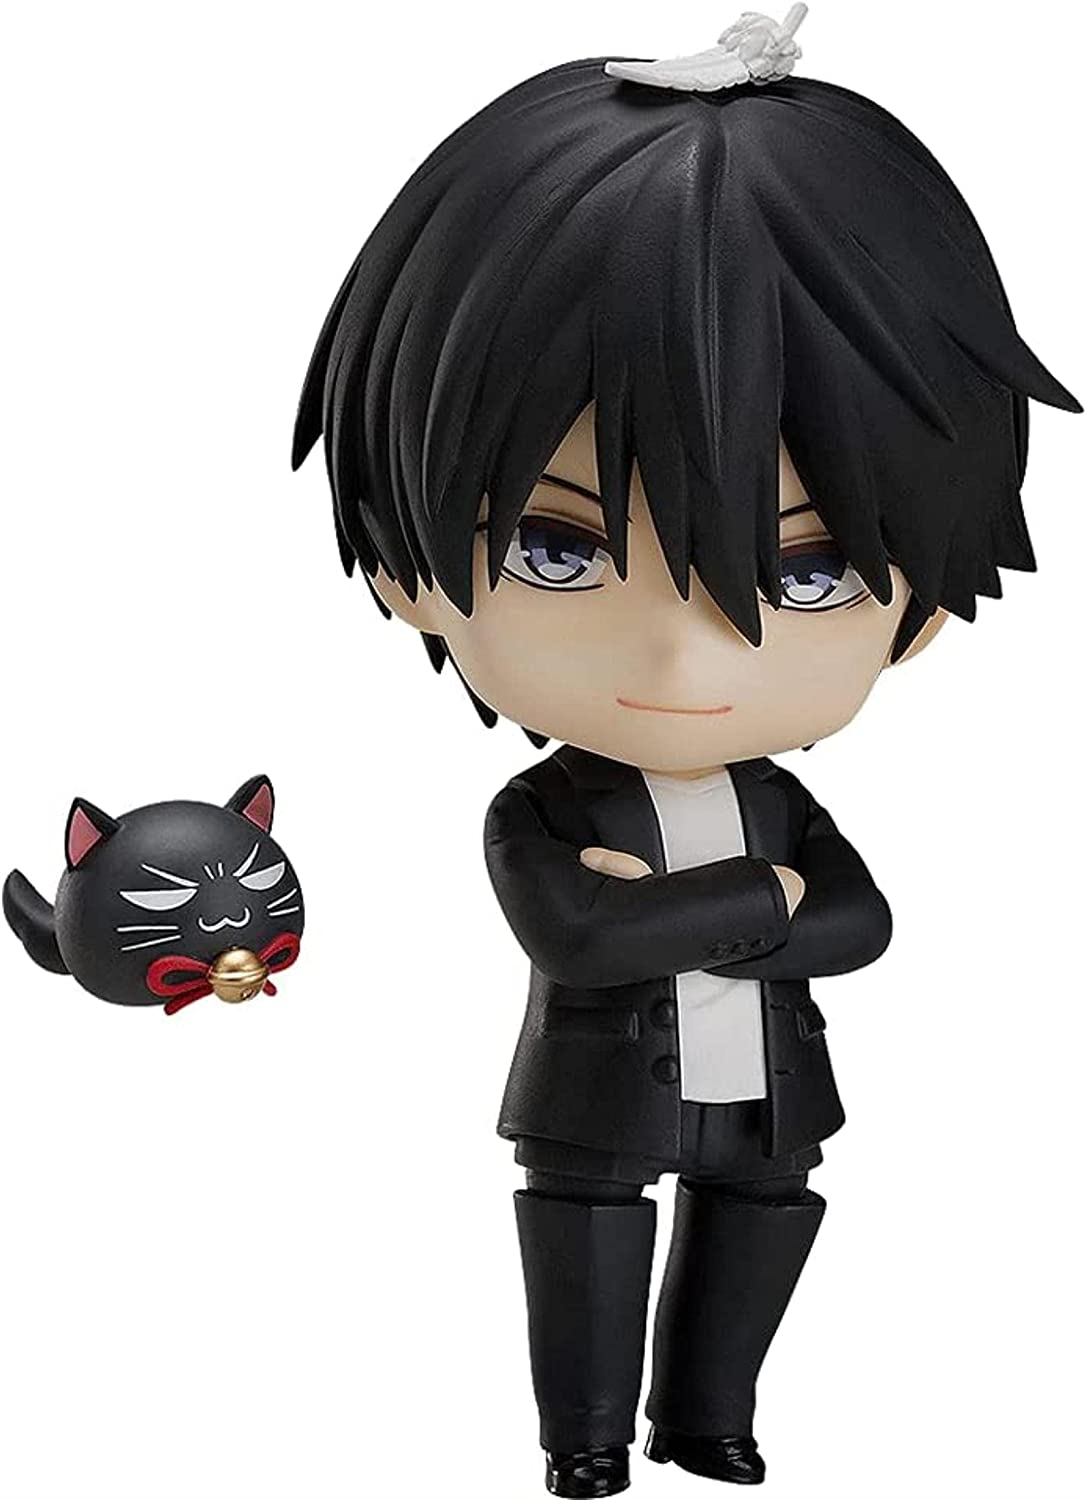 Limited price sale Movable Nendoroid Takato Saijo Figure trust An is from The